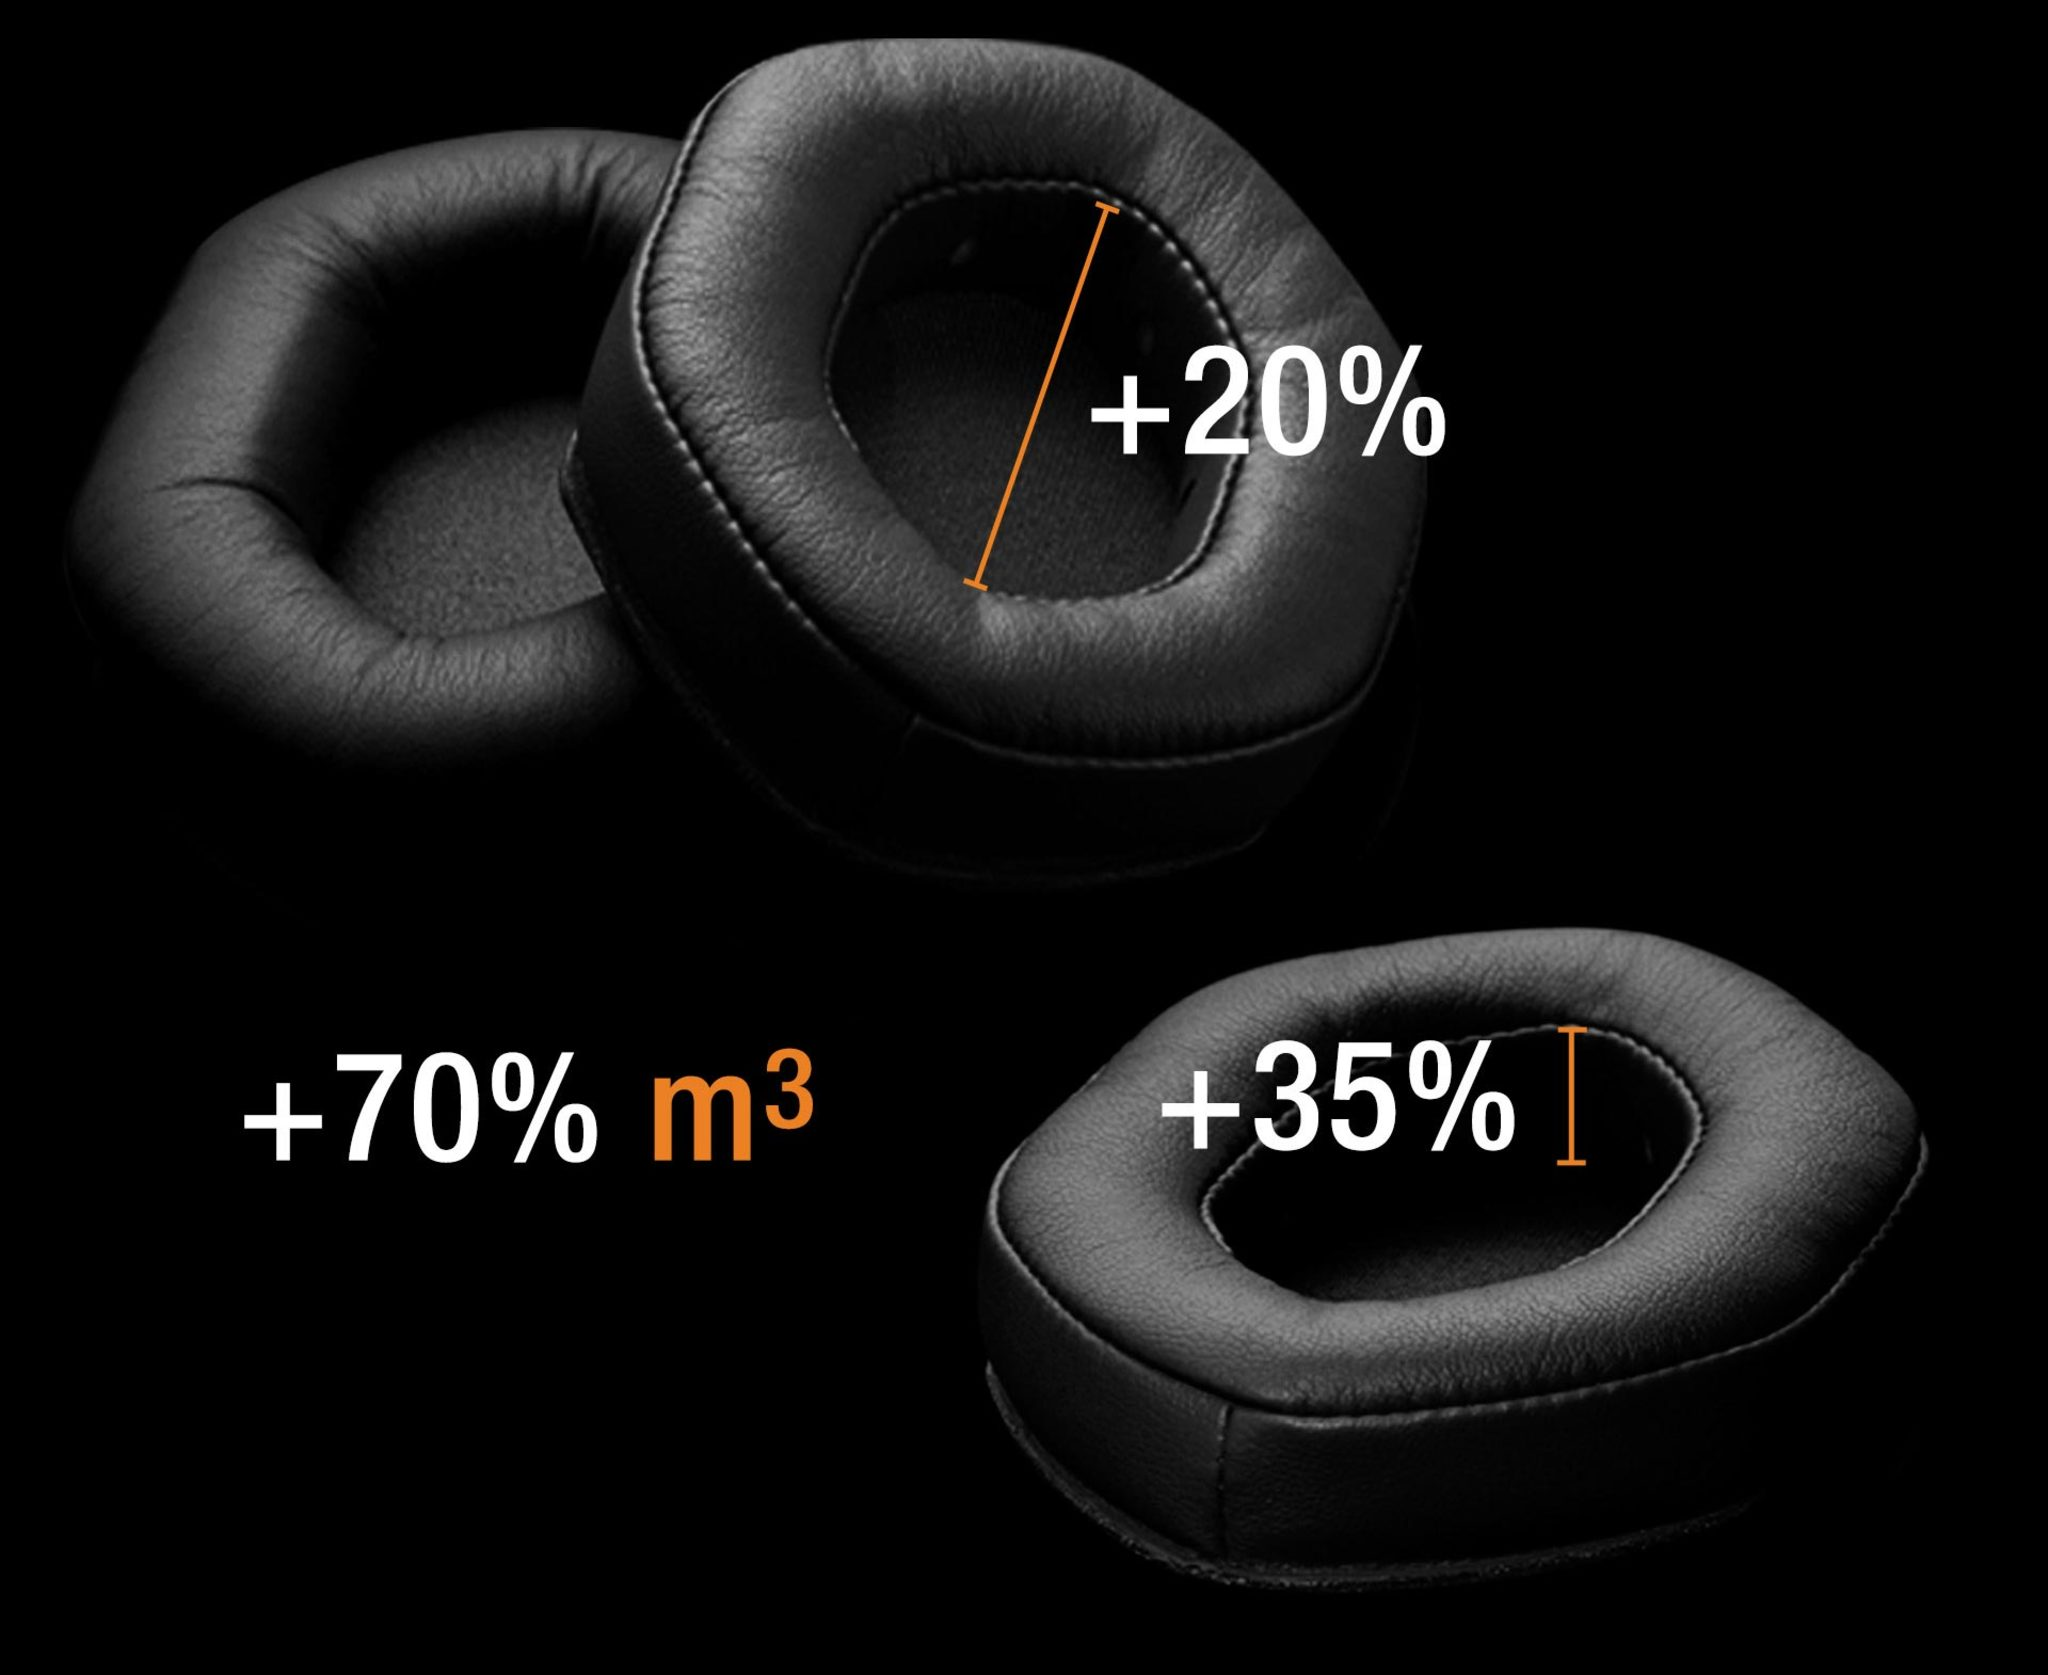 XL Extra Large Cushions for Over-Ear Headphones showing 70% extra space